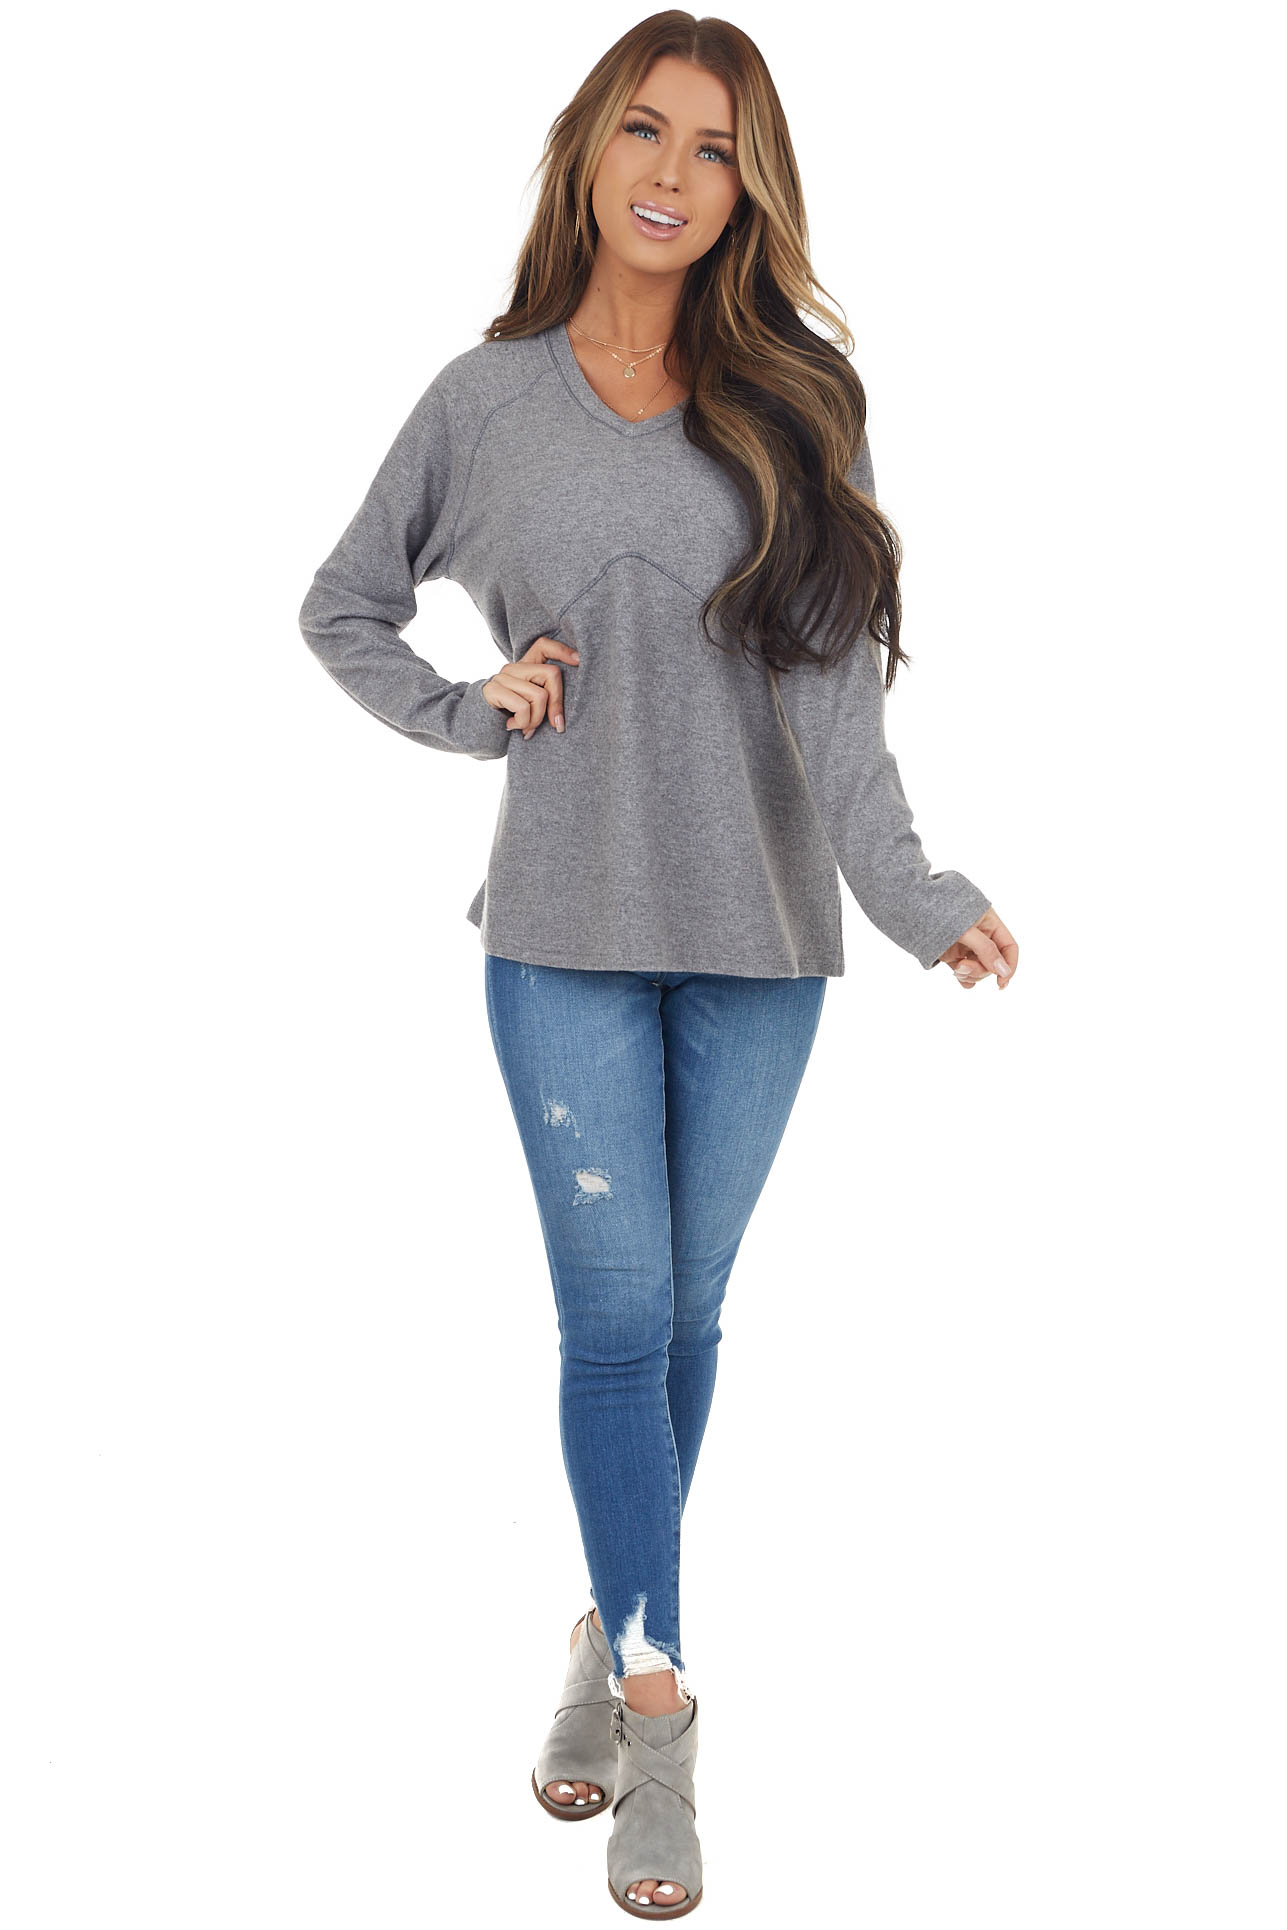 Charcoal Long Sleeve Soft Knit Top with Exposed Stitching